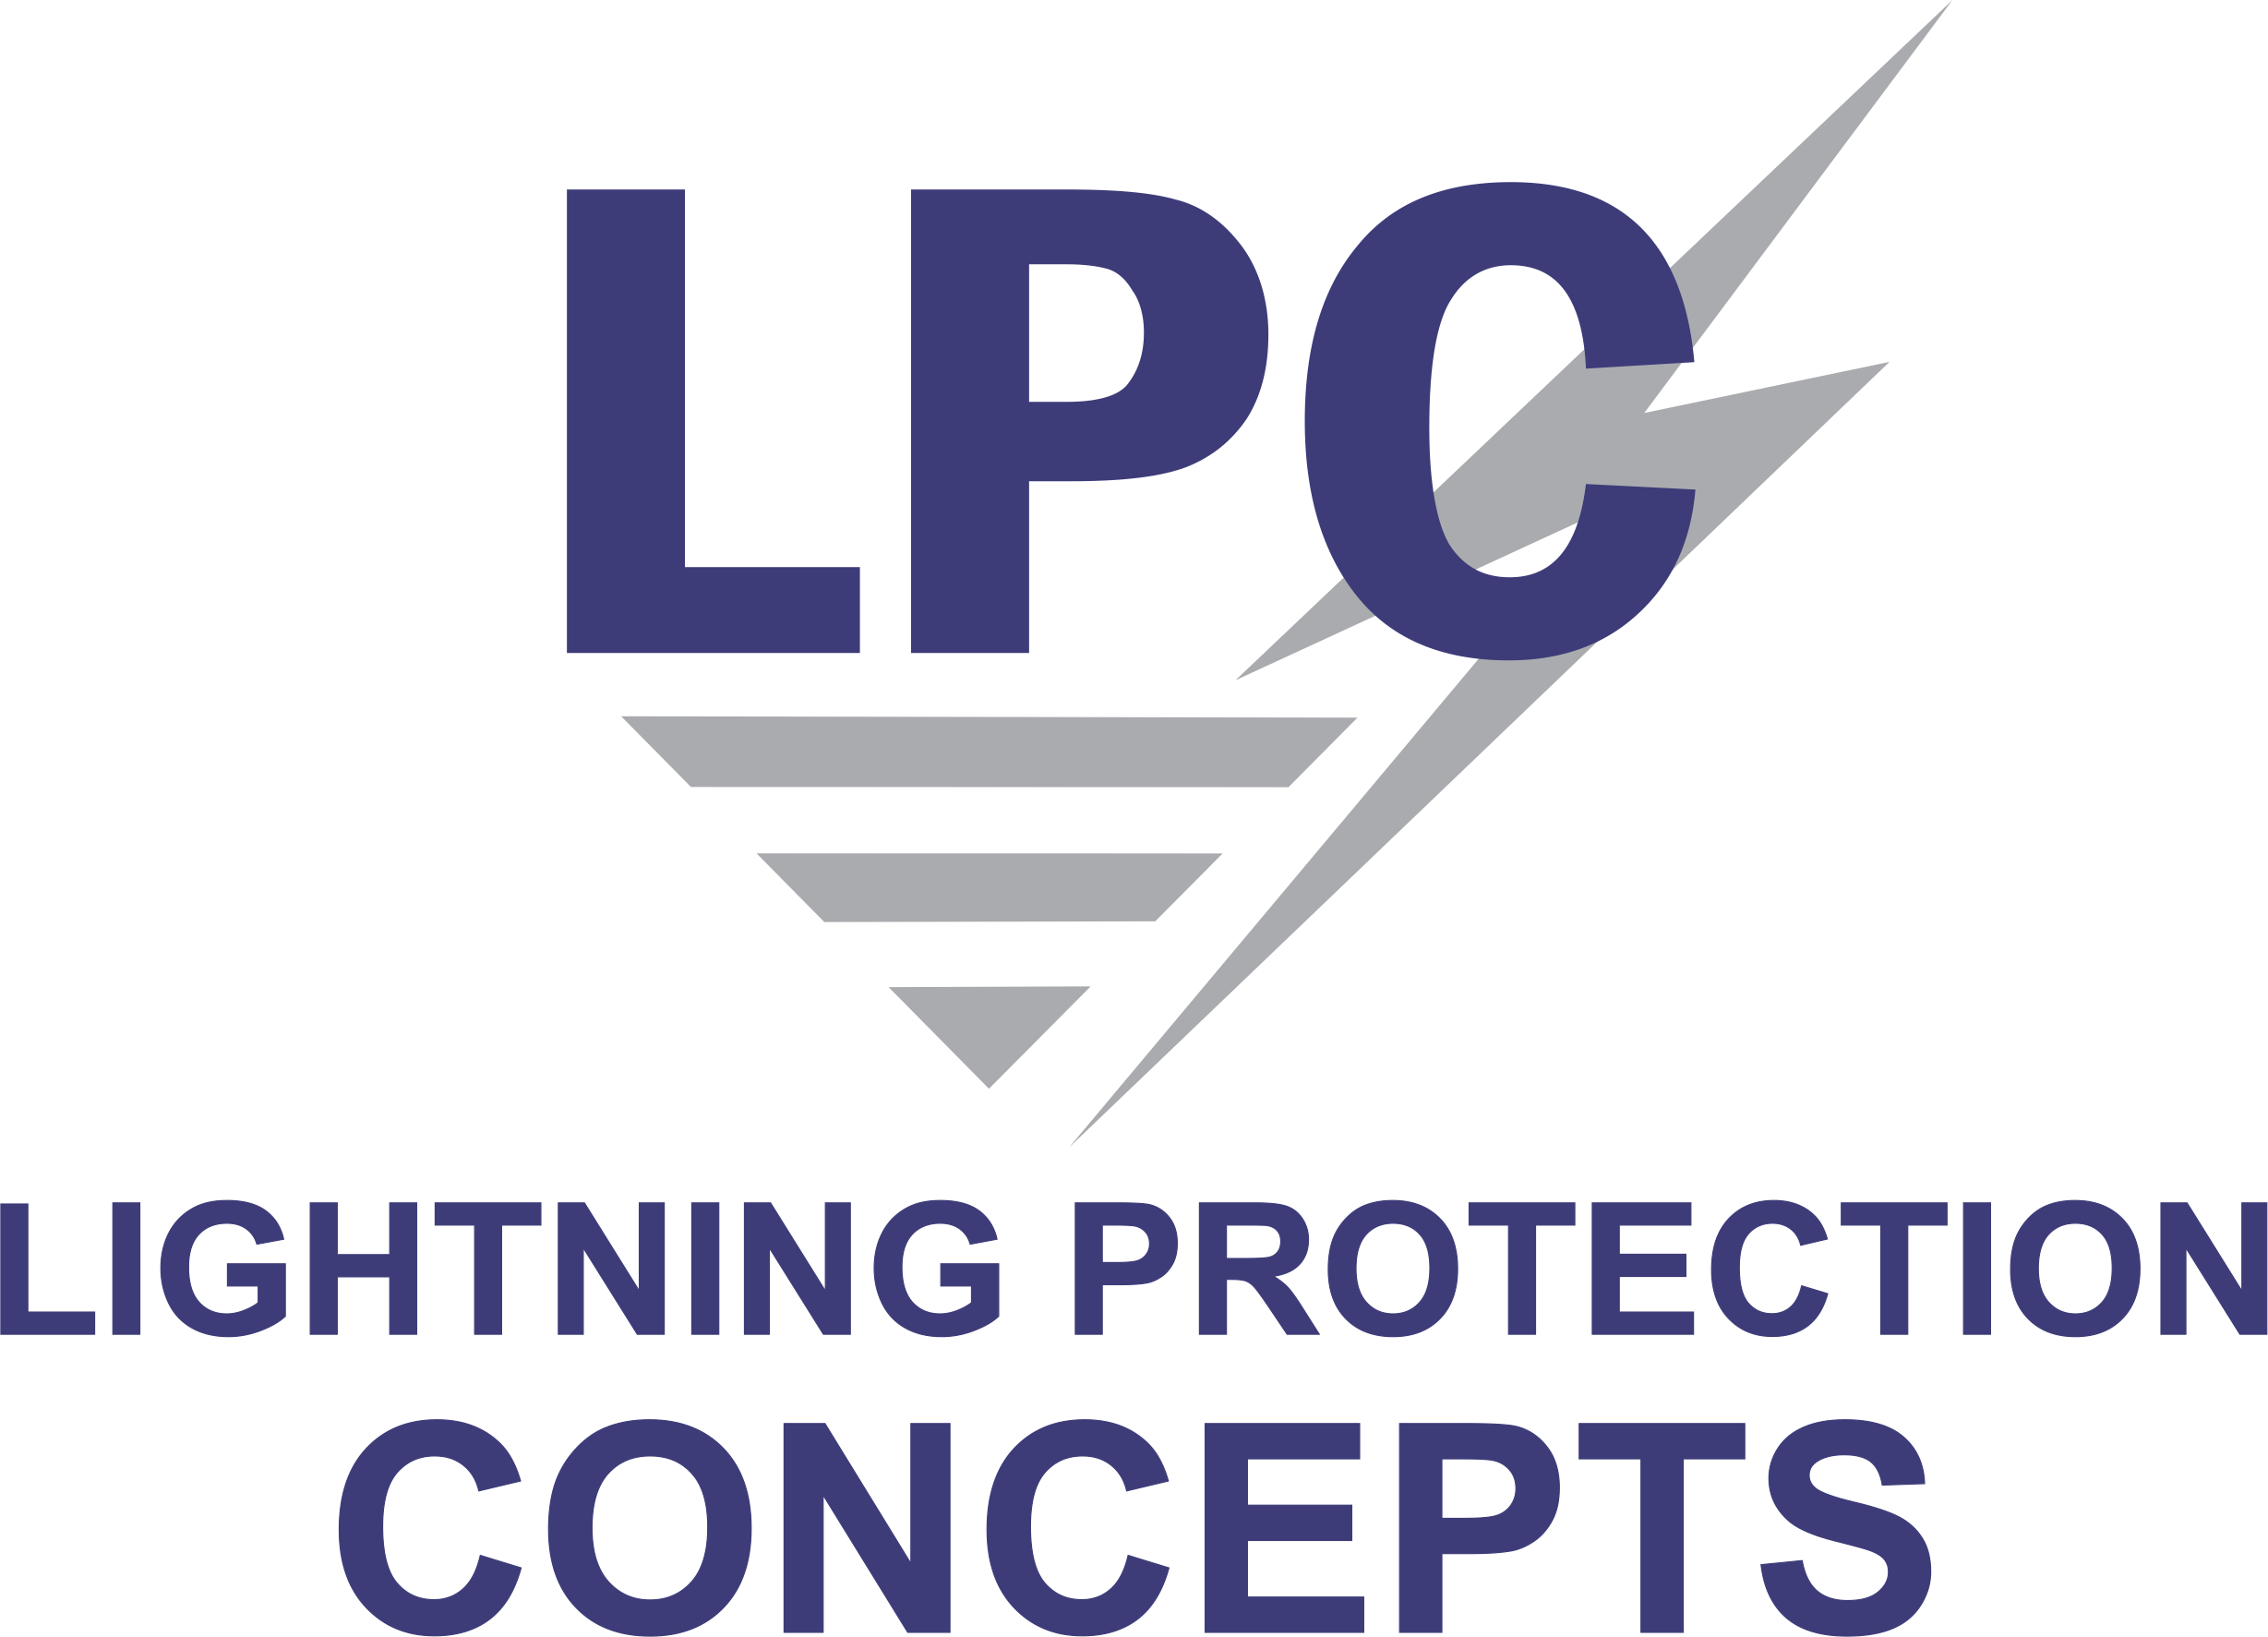 Lightning Protection Concepts